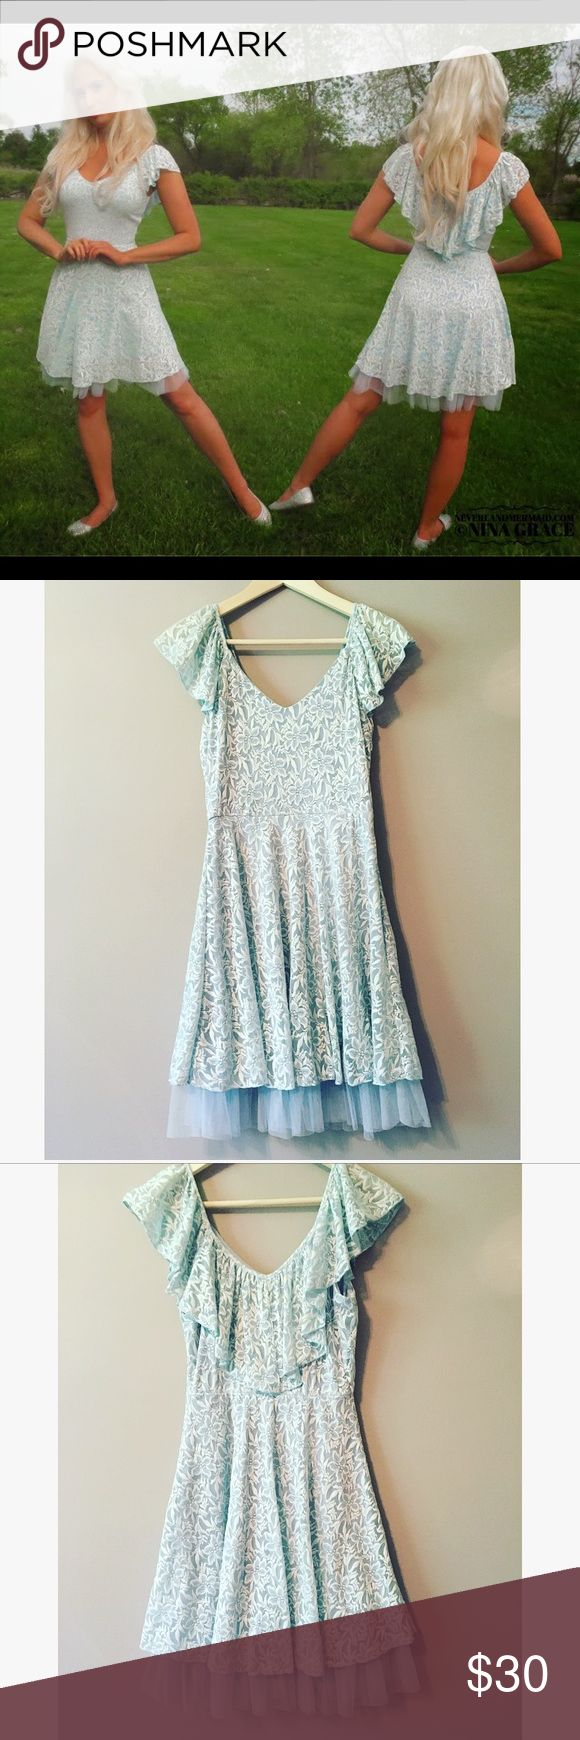 Cinderella Blue Lace Dress Worn once, this pale blue lace dress hits slightly above the knee. Has soft tulle underneath! Size medium. This was a limited edition collection from Kohls with Disney for the new Cinderella movie.  🌸Size: Medium with stretch 🌸Condition: Like New Disney Dresses Midi